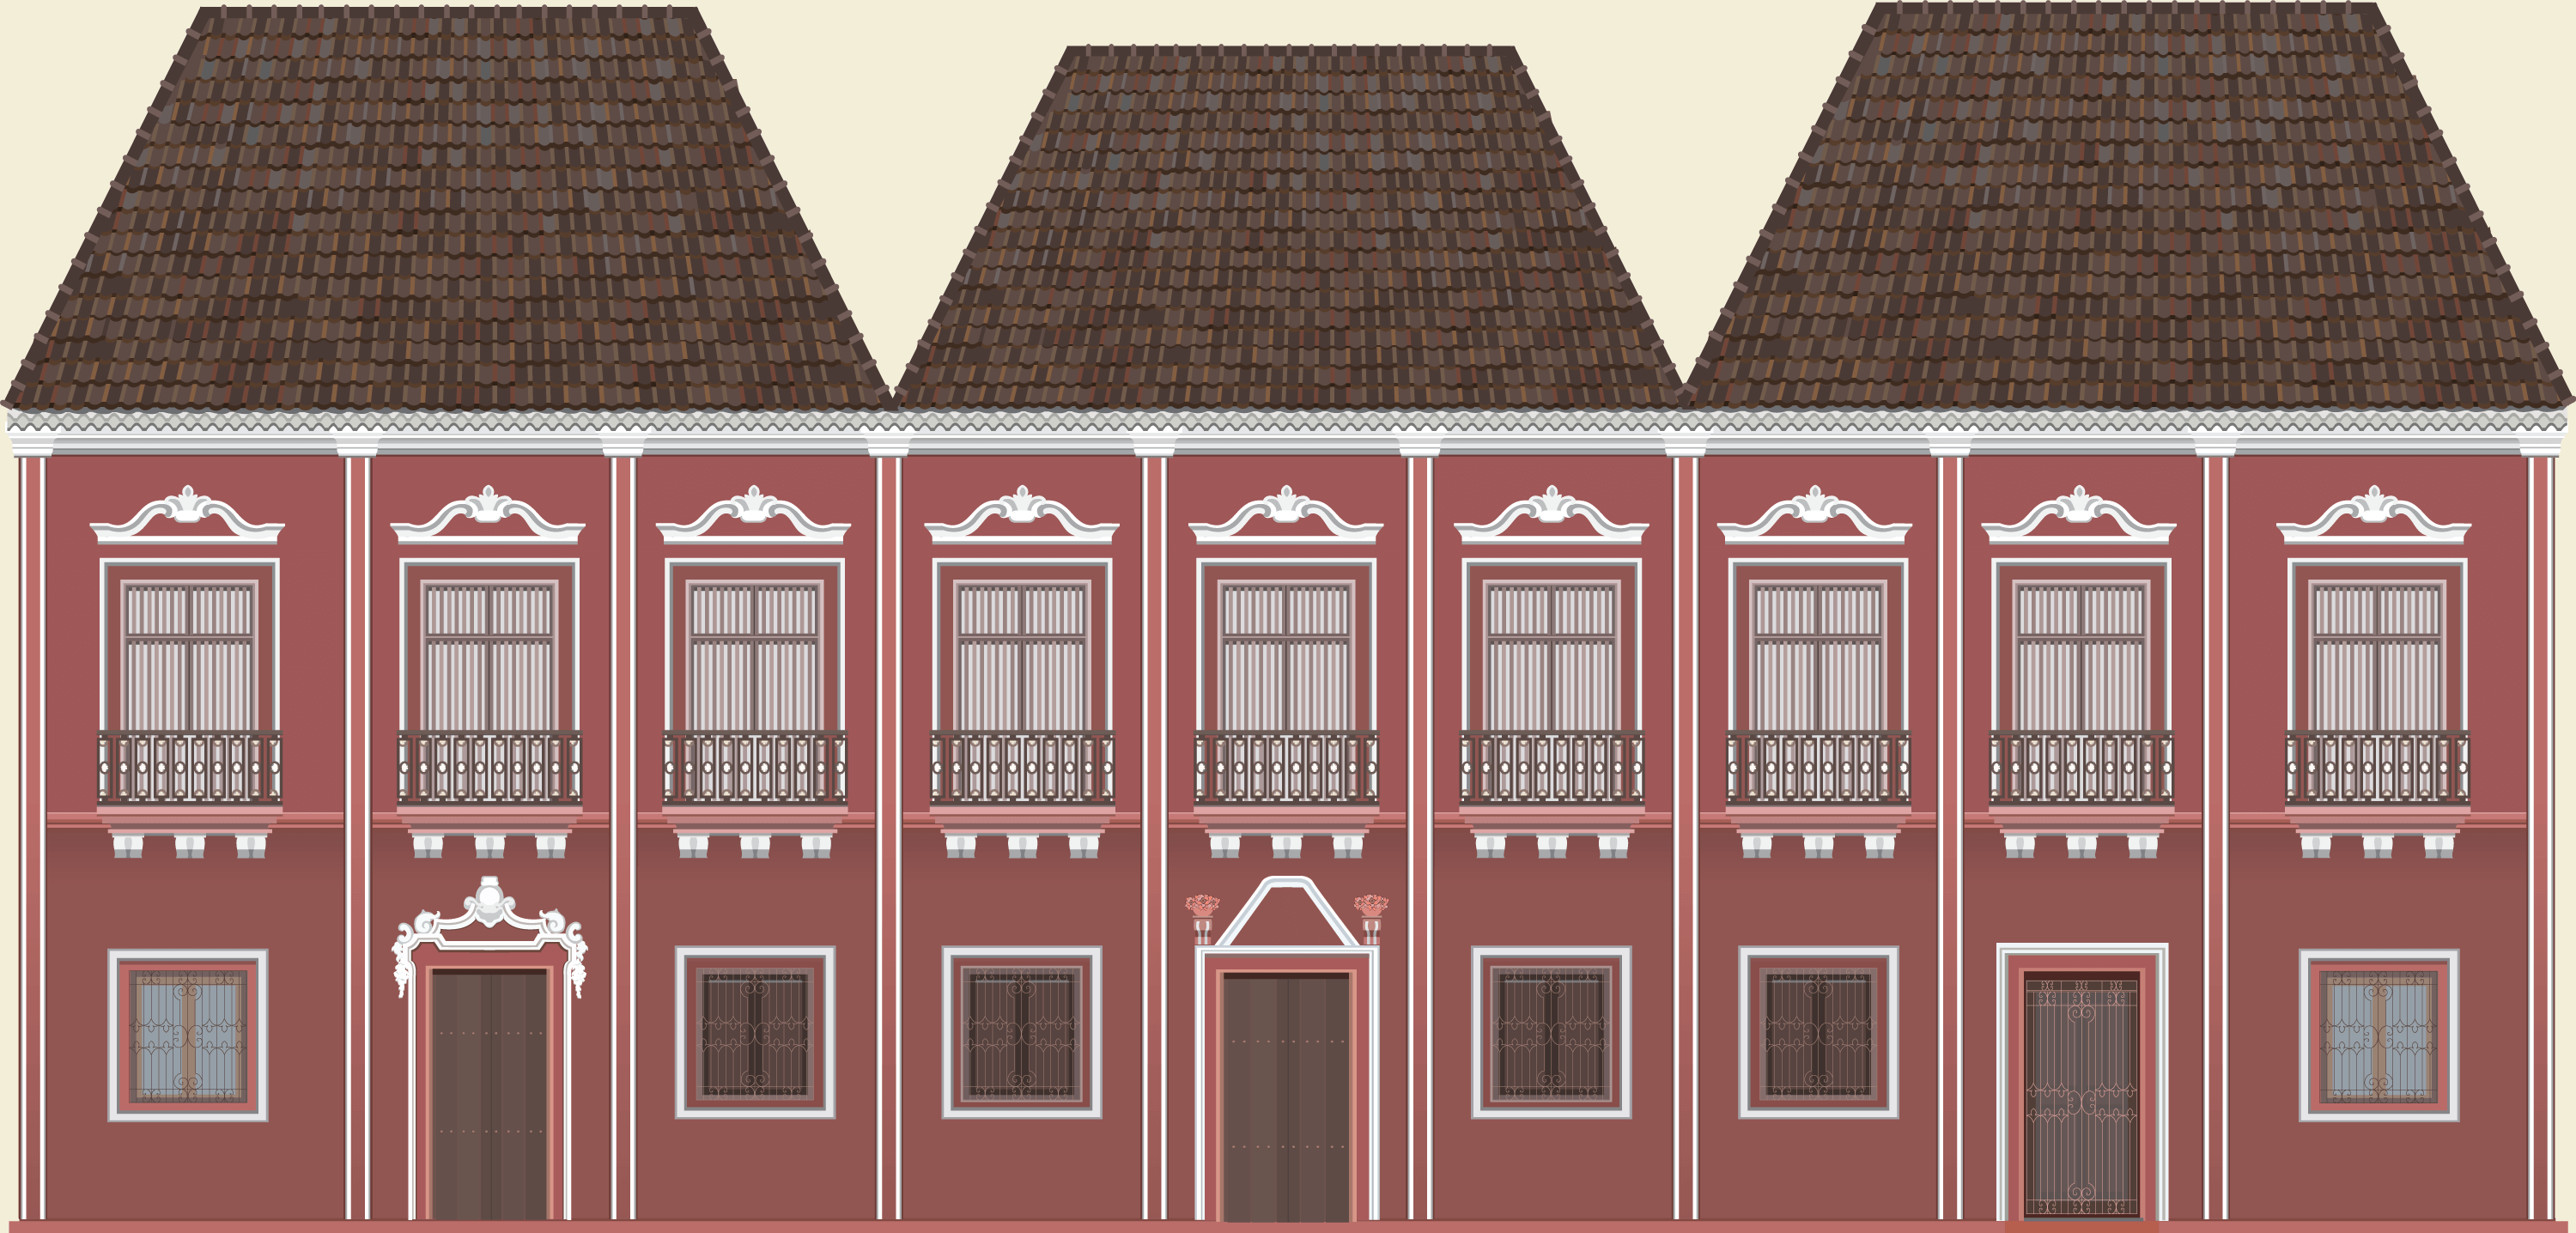 An Illustrated tribute to the beautiful Indo-Portuguese Architecture of Goa. A Project by Beard Design.